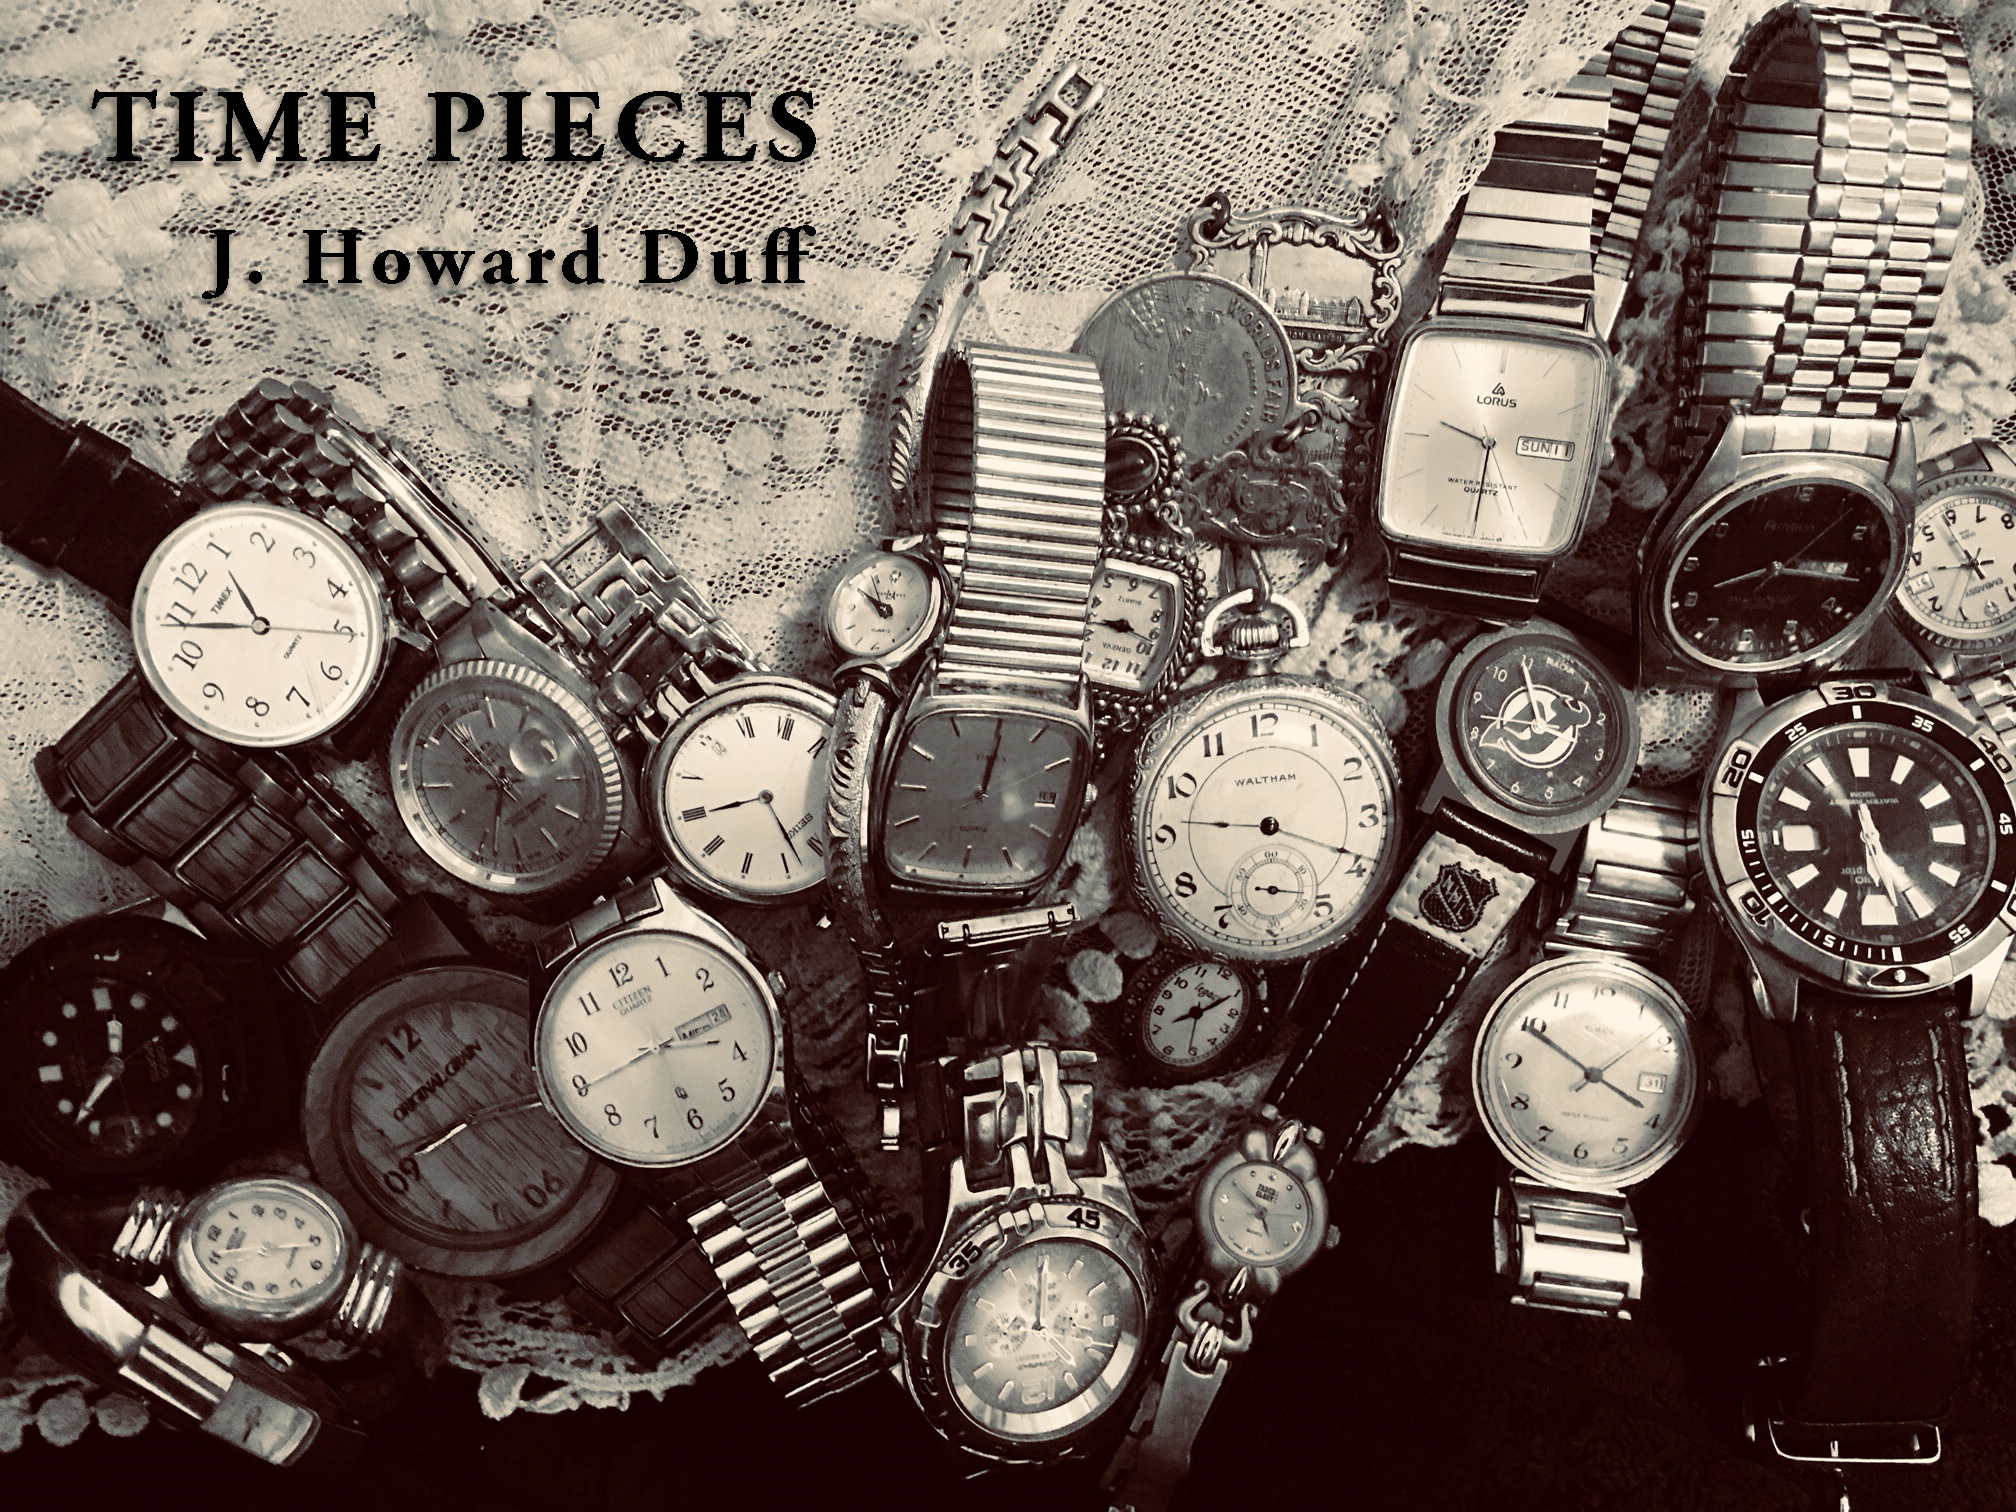 Time Pieces Front Cover.jpg